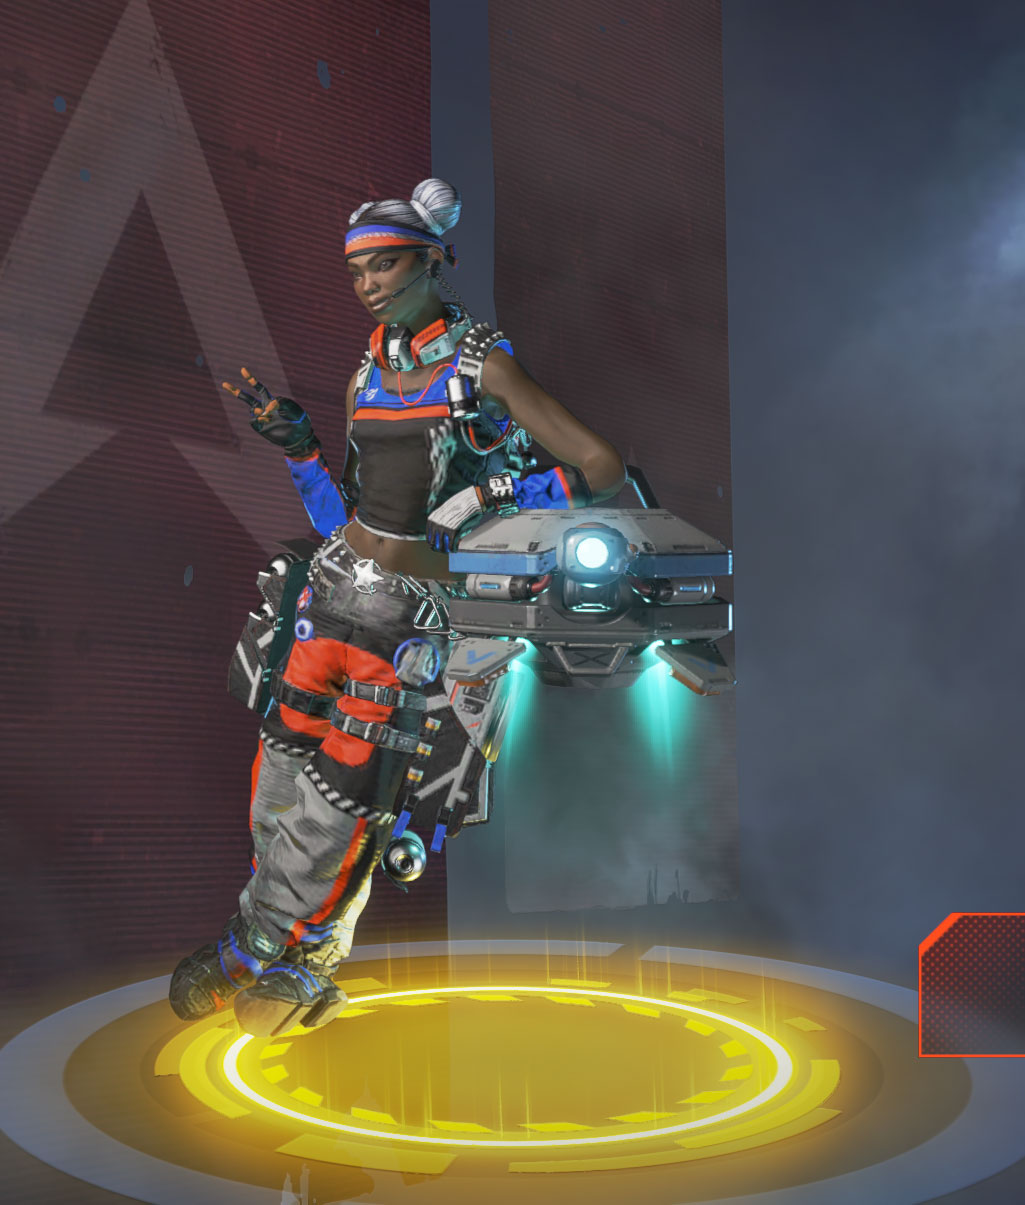 Apex Legends Skins List – All Available Cosmetics for Each